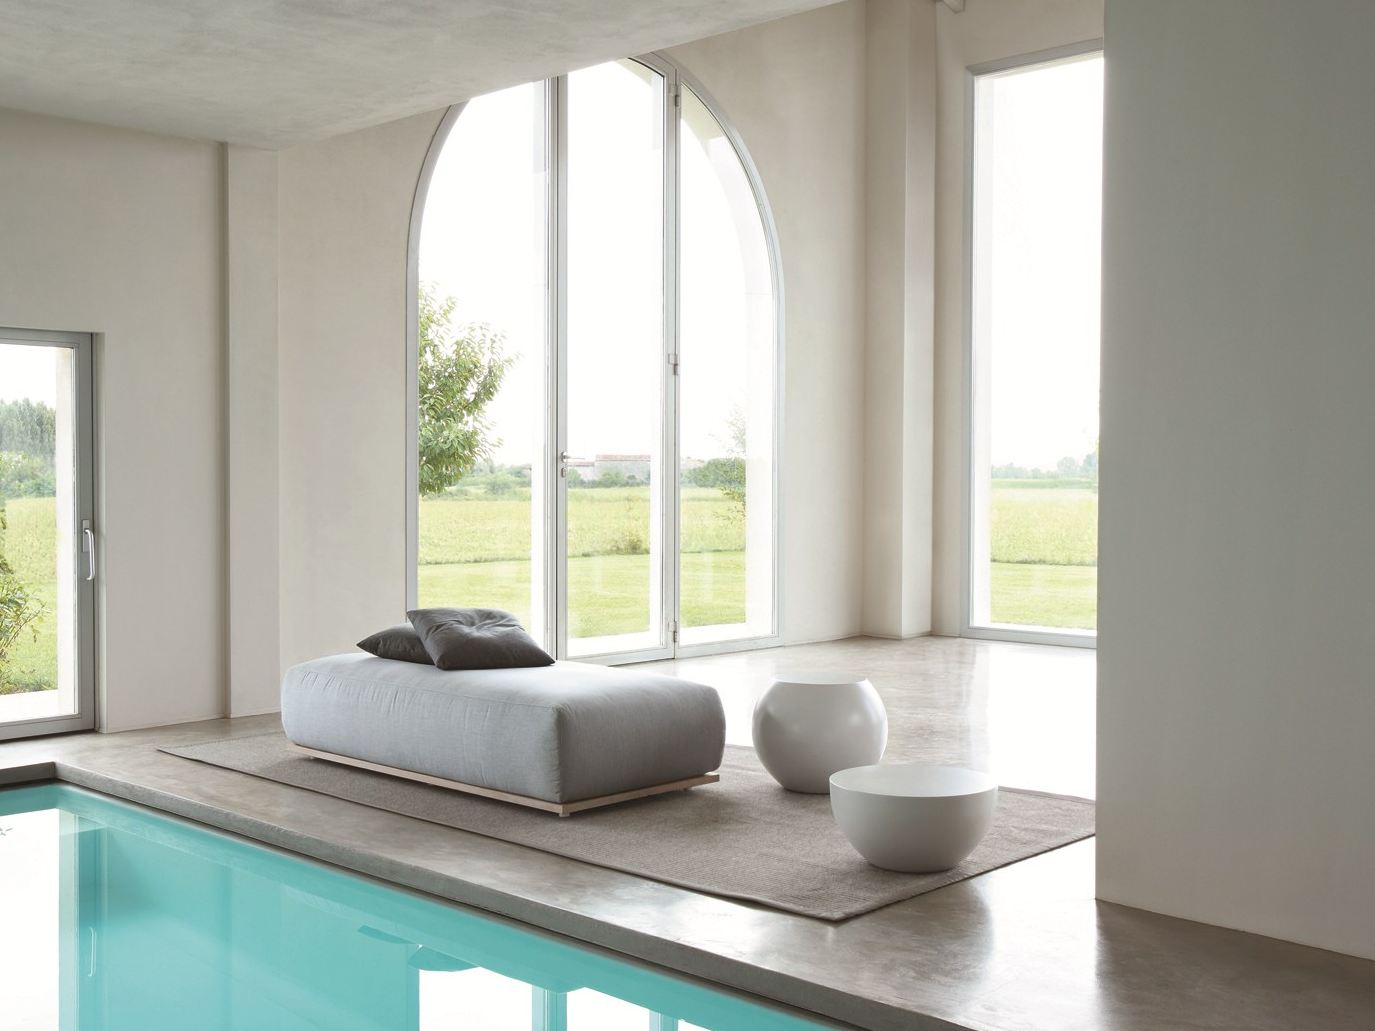 CLOUD: LOUNGE BED DI ANDREA PARISIO PER MERIDIANI